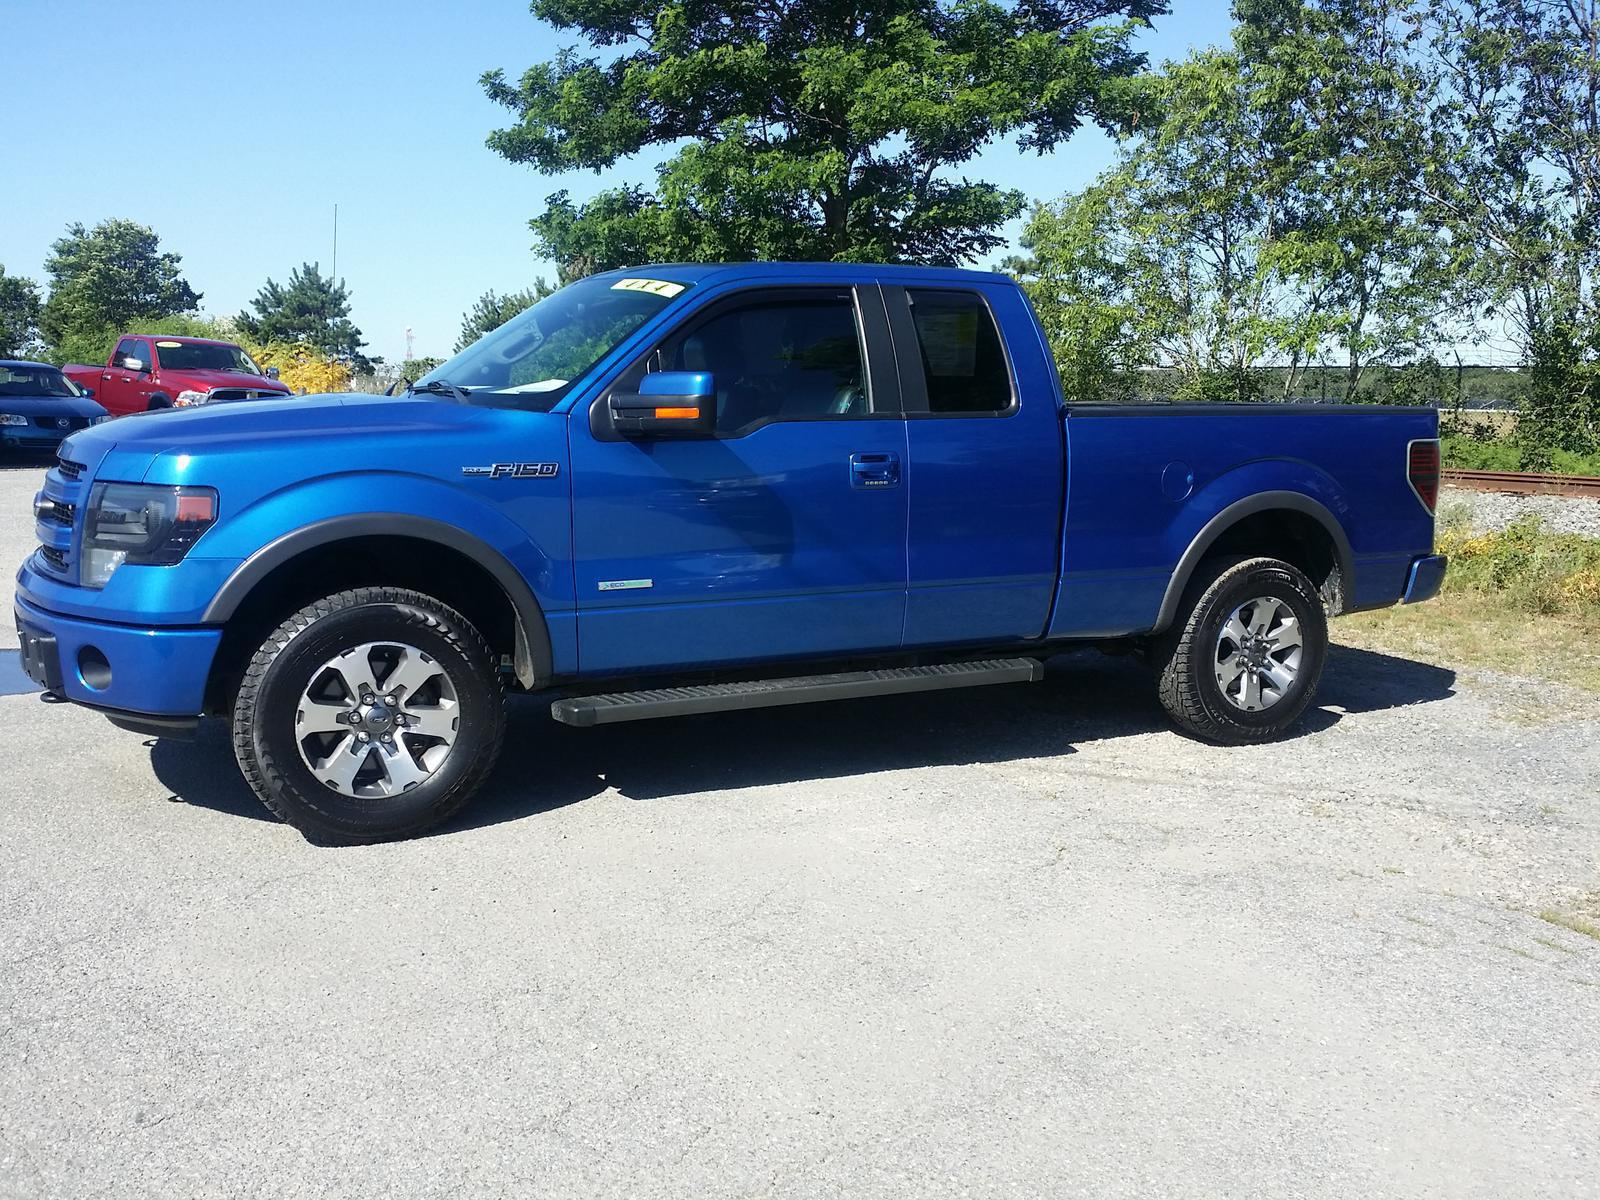 Ford F150 4x4 2013 Ford Ford F150 Supercab Fx4 4x4 Ecoboost For Sale In Hyannis